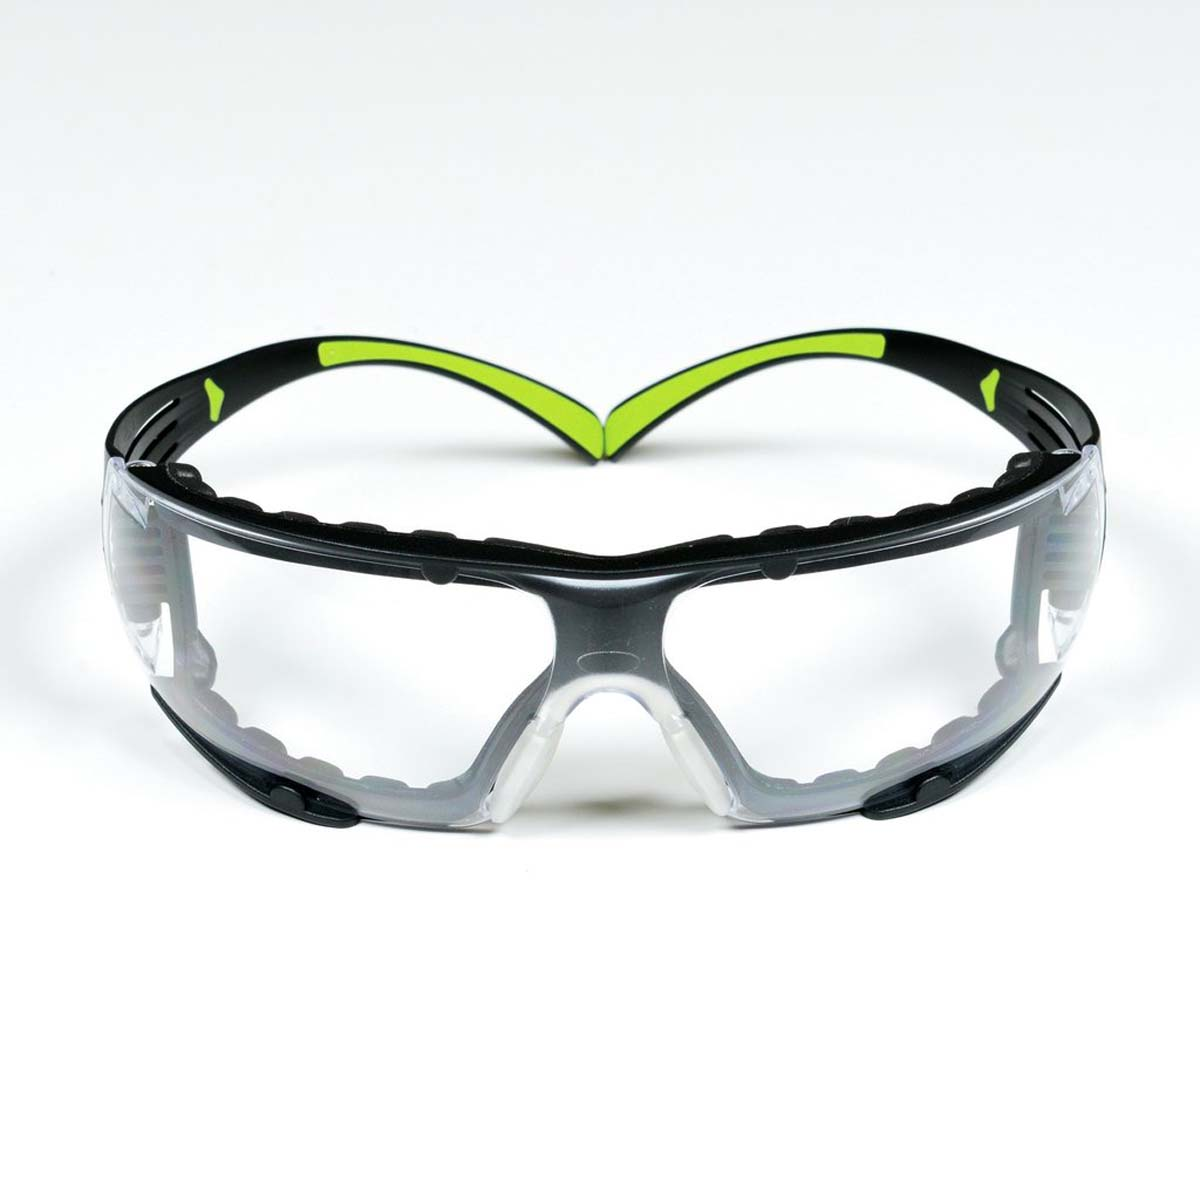 "3Mâ""¢SecureFitâ""¢, 400-Series, Protective Eyewear, SF401AF-FM, Foam, Clear Anti-fog lens, 20ea/cs"